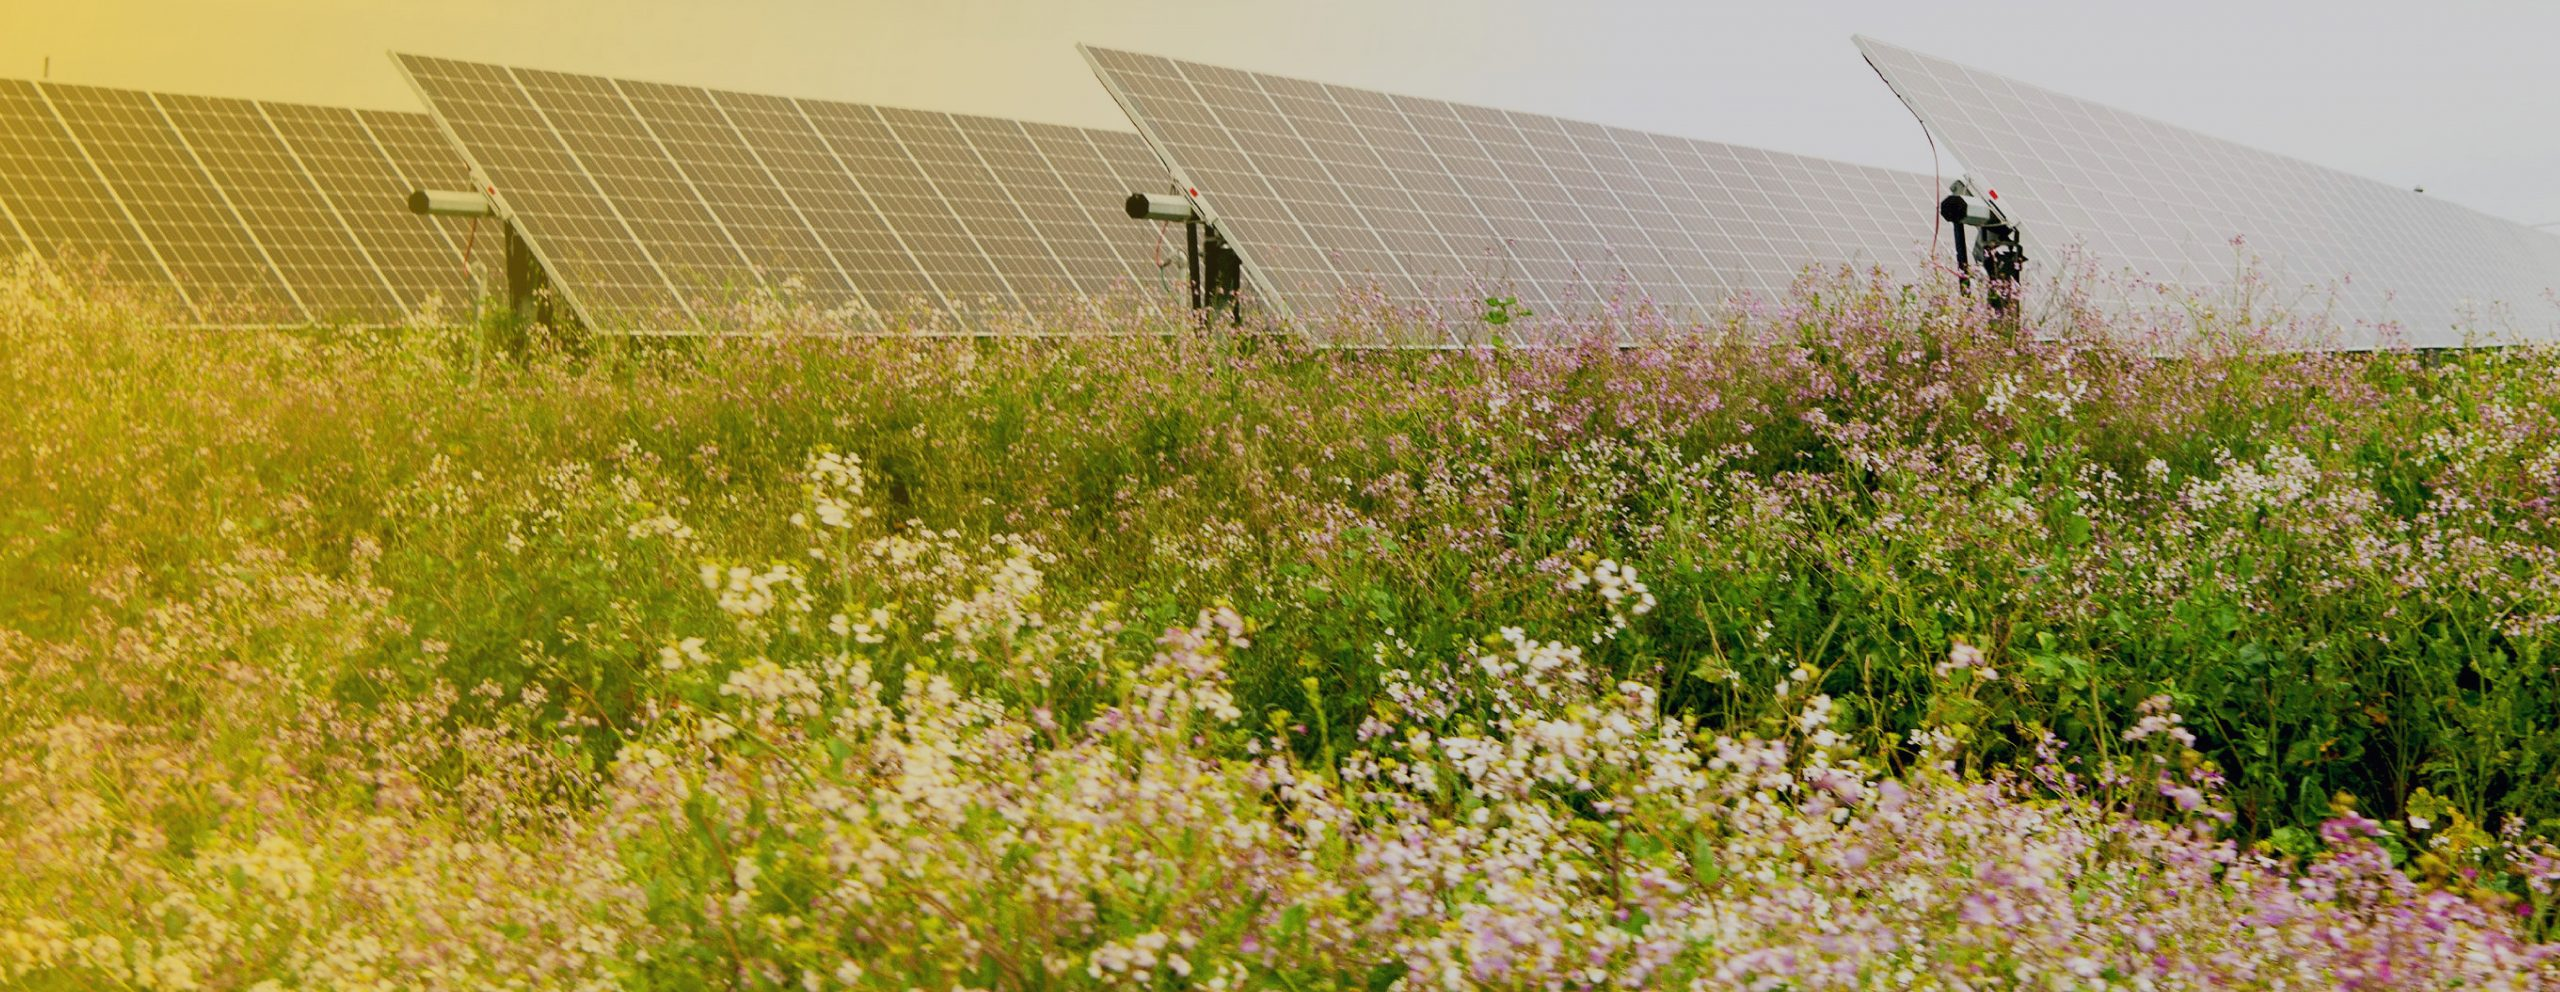 SOLAR POWER + AGRICULTURE: The Practices and Synergies of Agrivoltaics